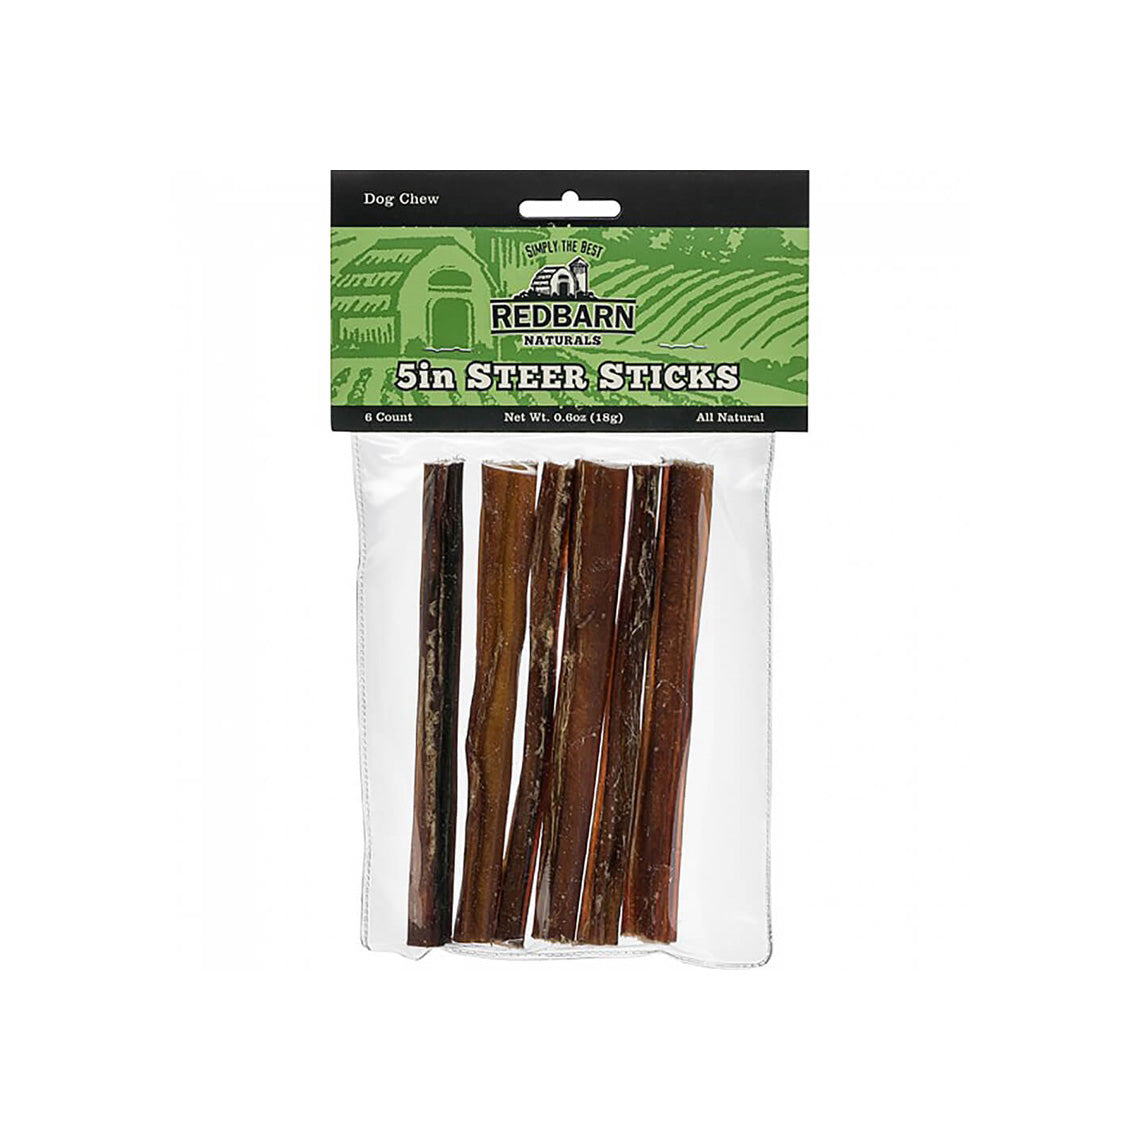 Redbarn Steer Sticks Dog Chews